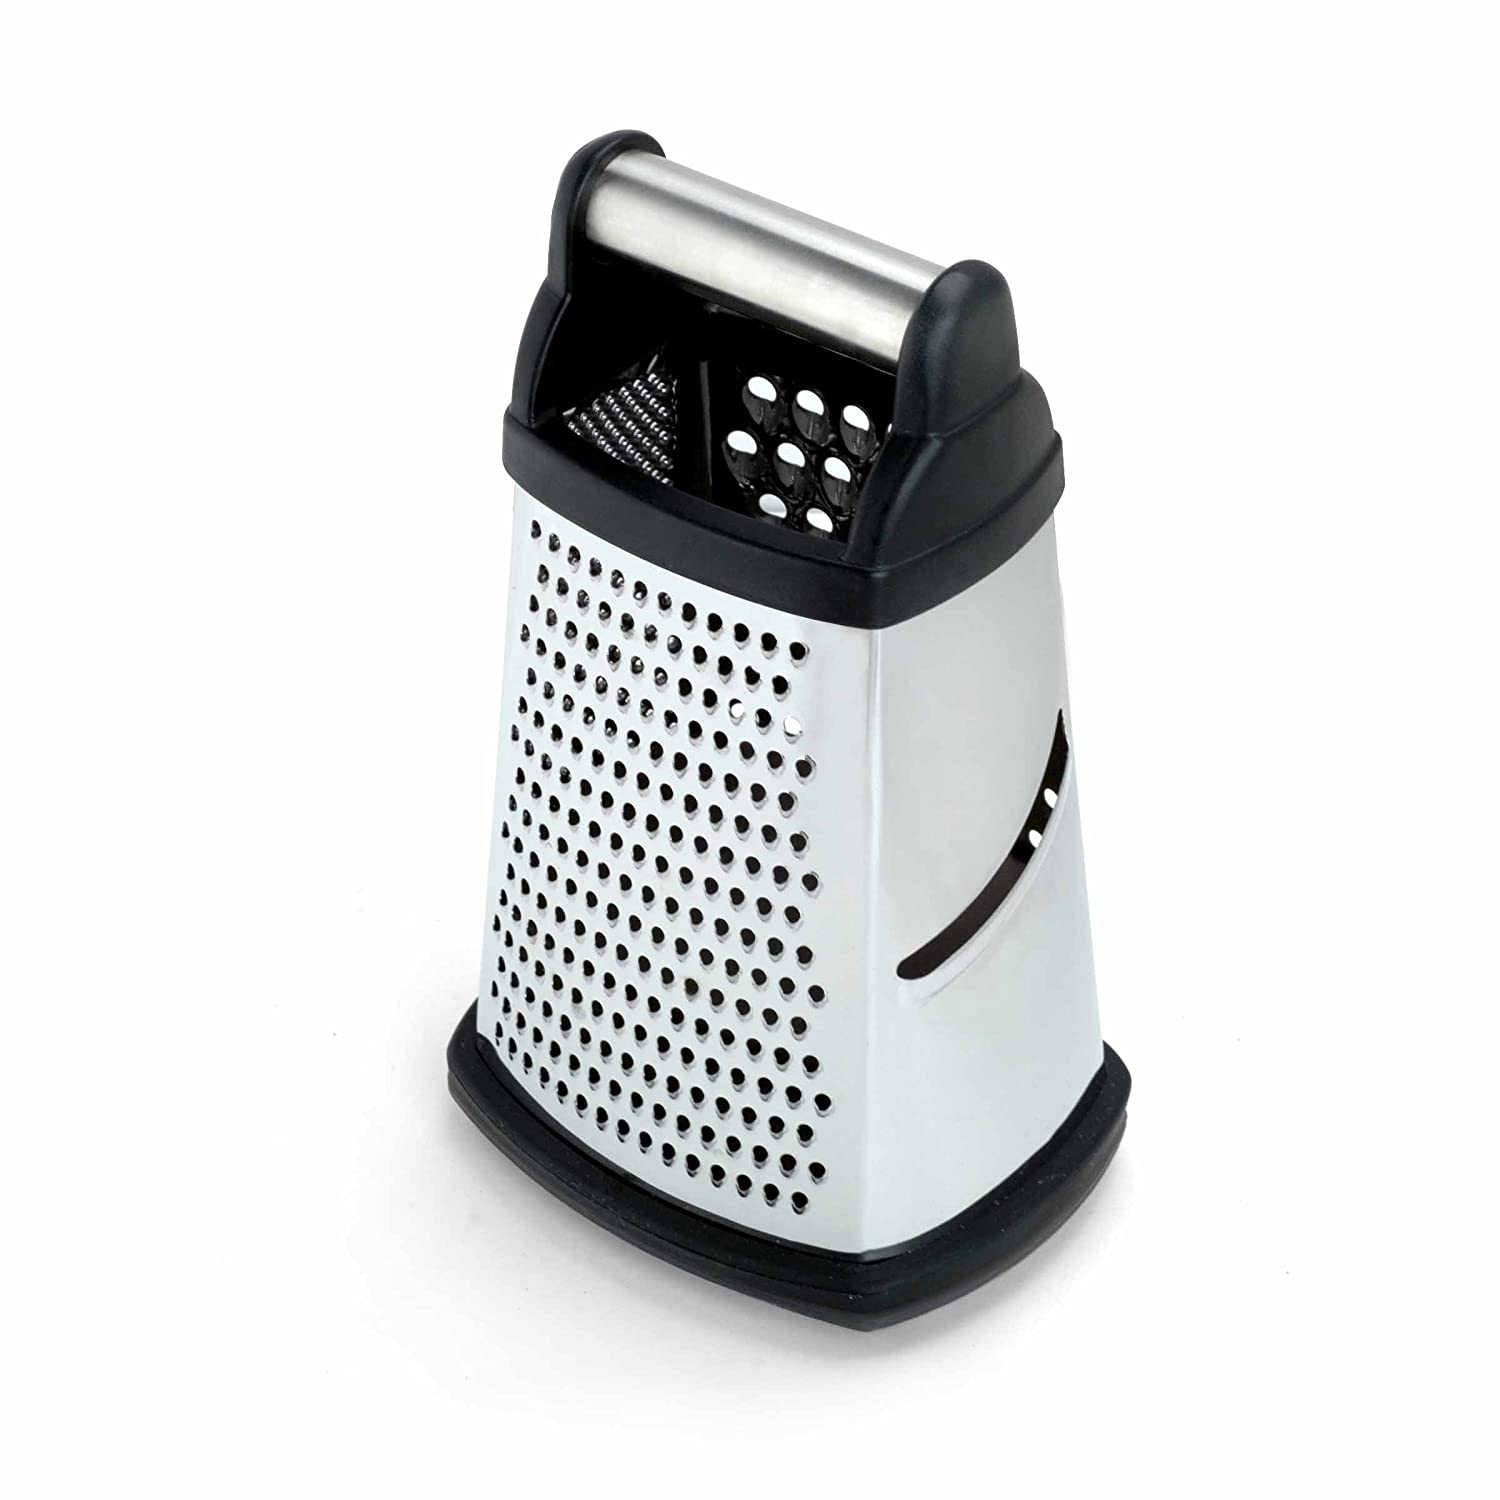 Superb Amazon.com: KitchenAid KG300 Box Grater, Black: Cheese Graters: Kitchen U0026  Dining